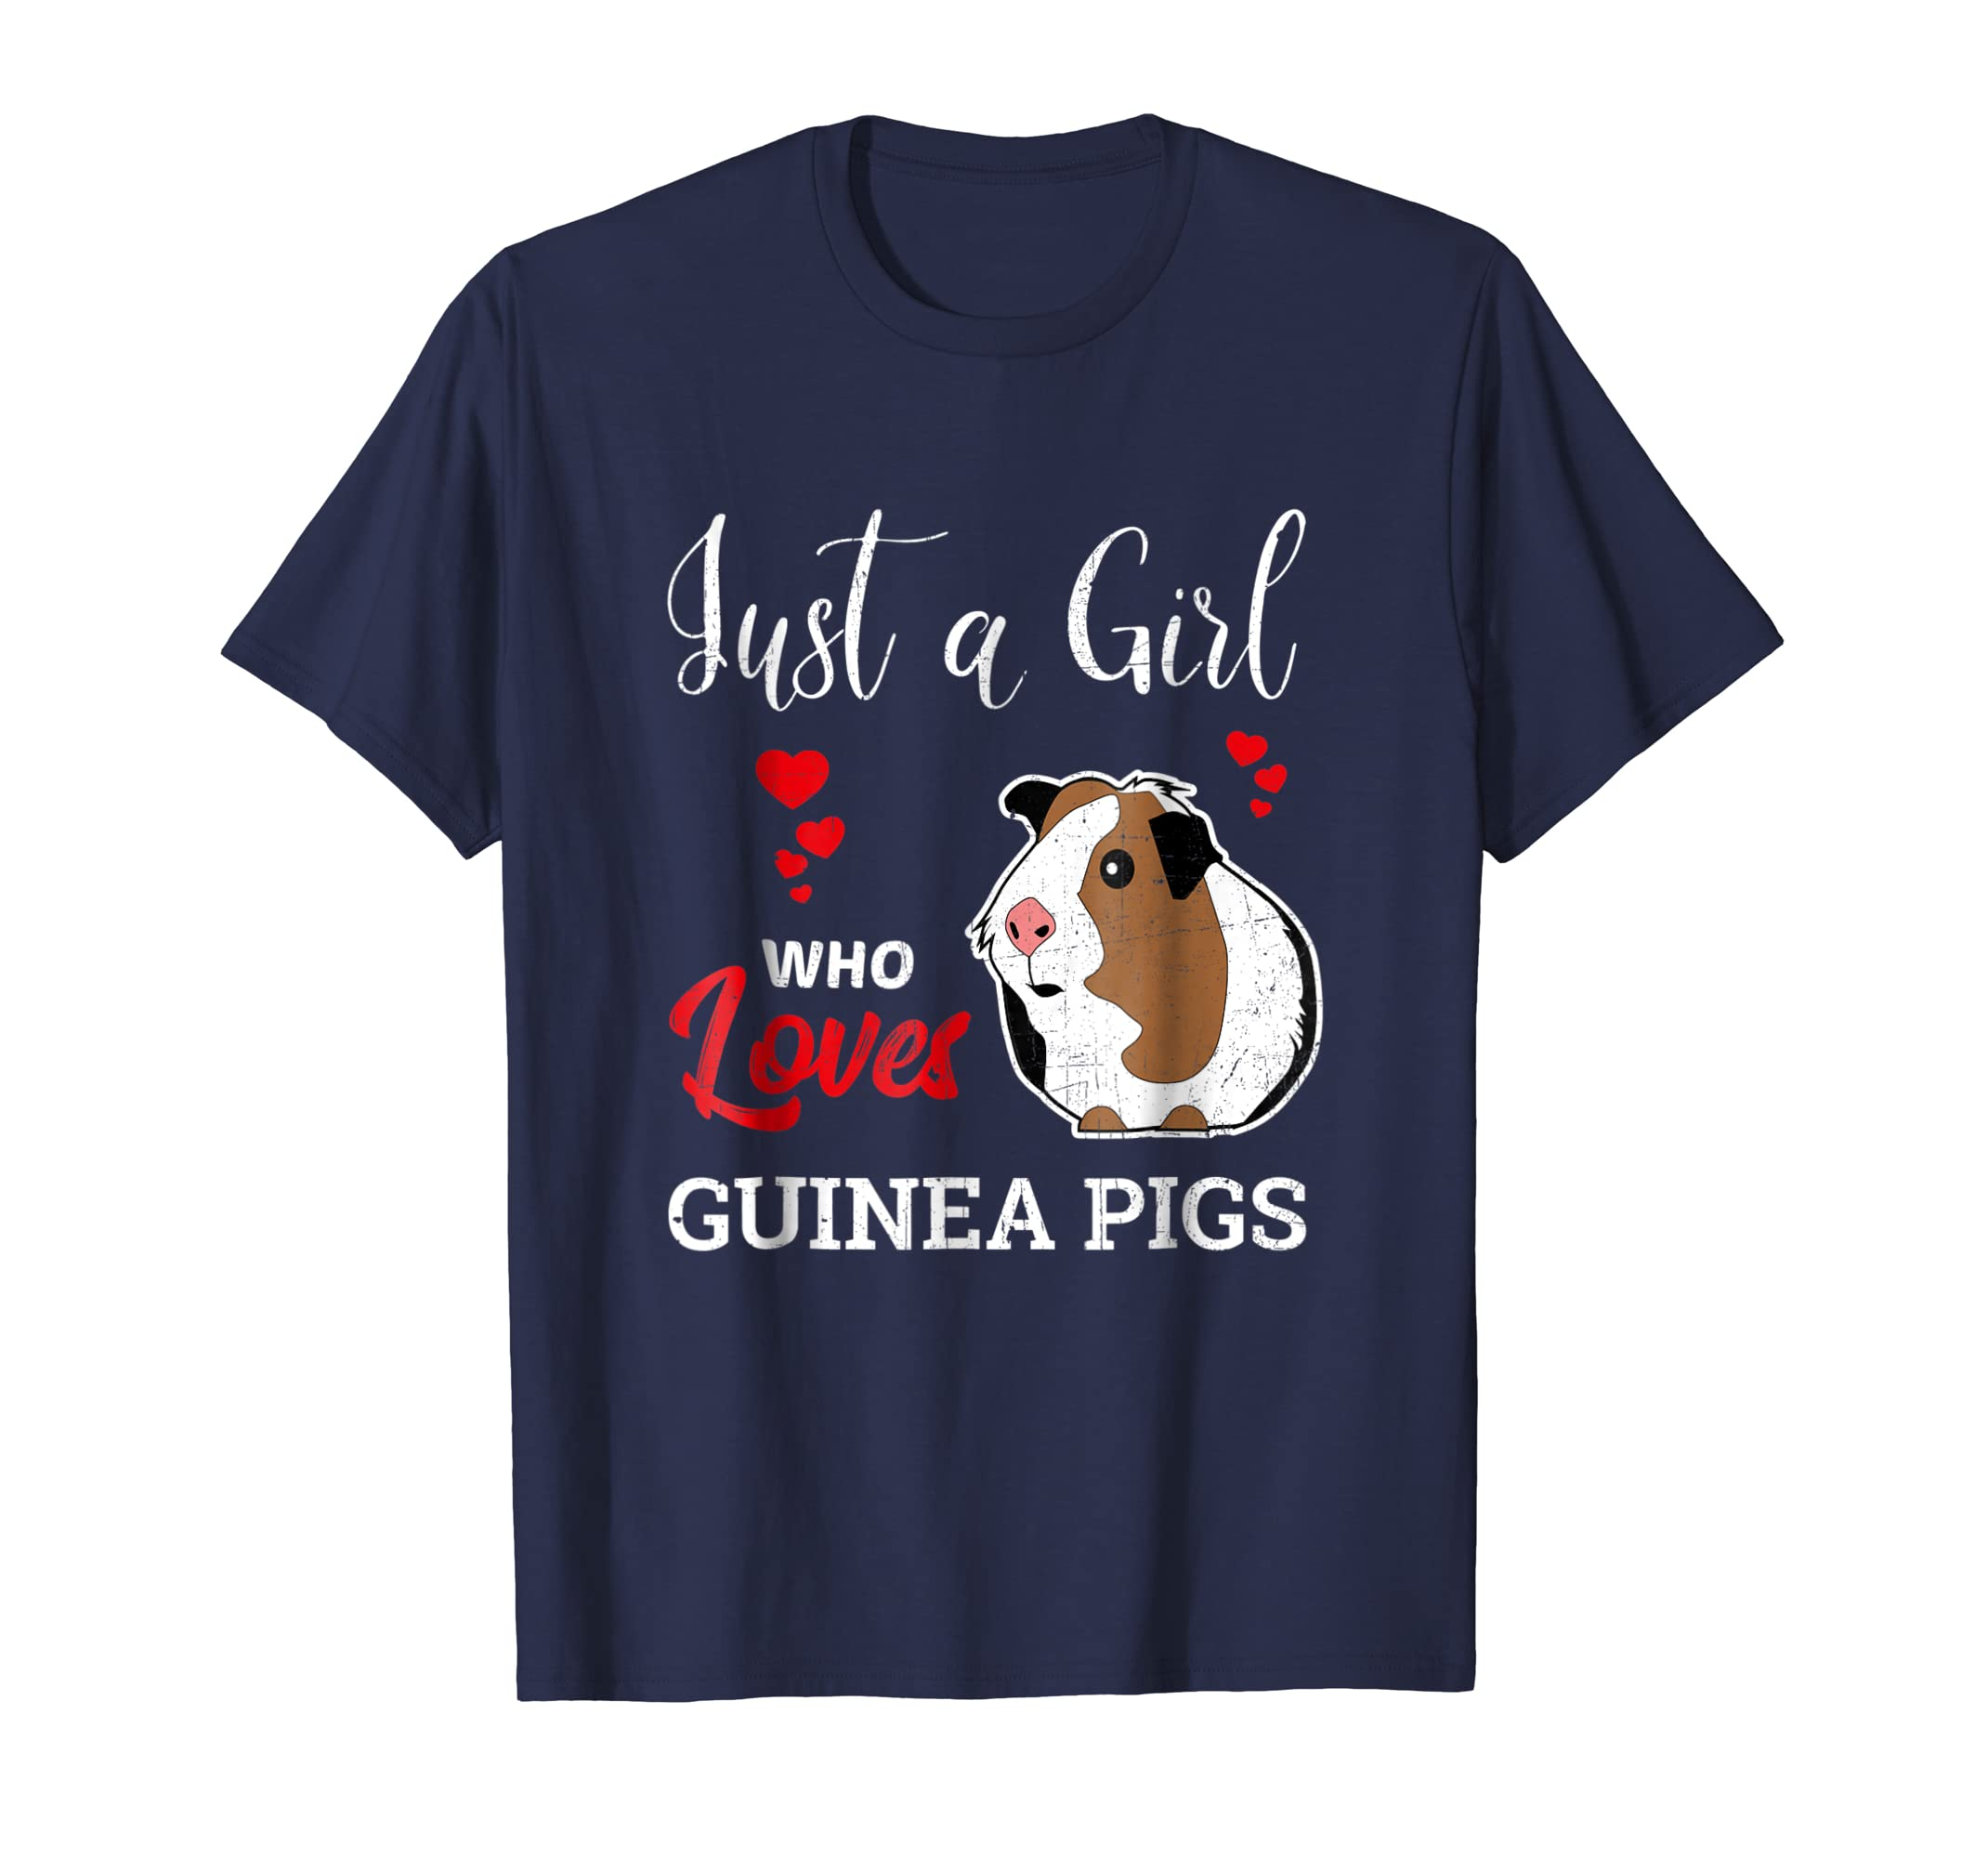 Just a Girl Who Loves Guinea Pigs - Funny Animal T-Shirt-AZP